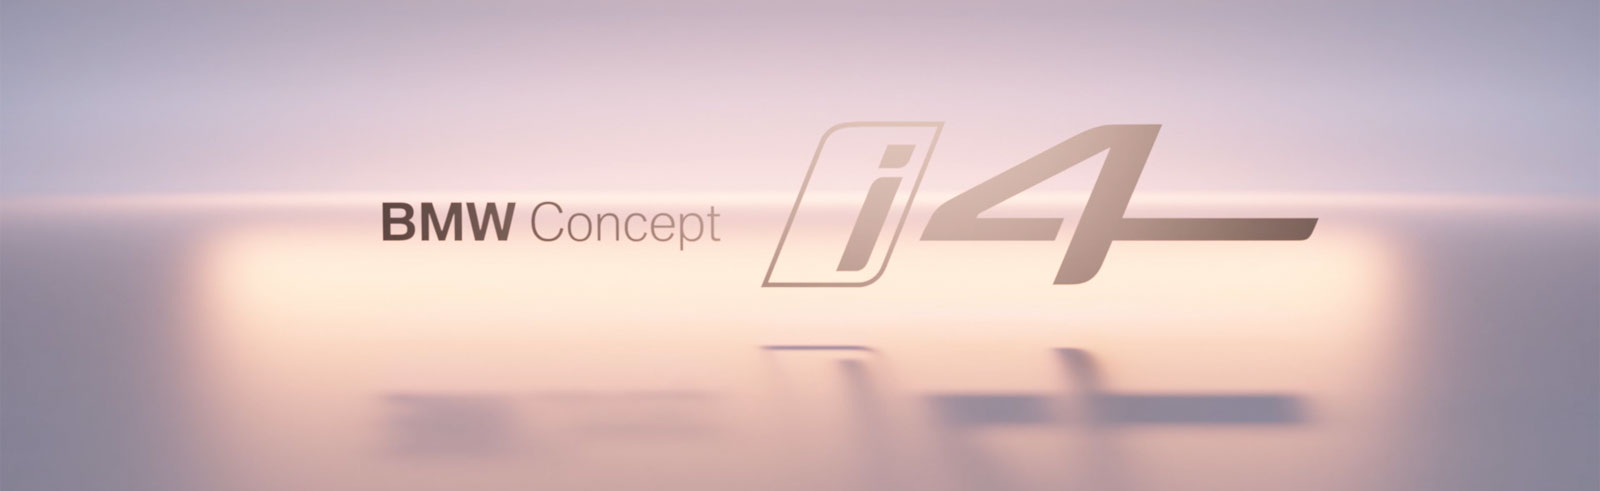 BMW teases the BMW Concept i4, will debut at the Geneva Motor Show